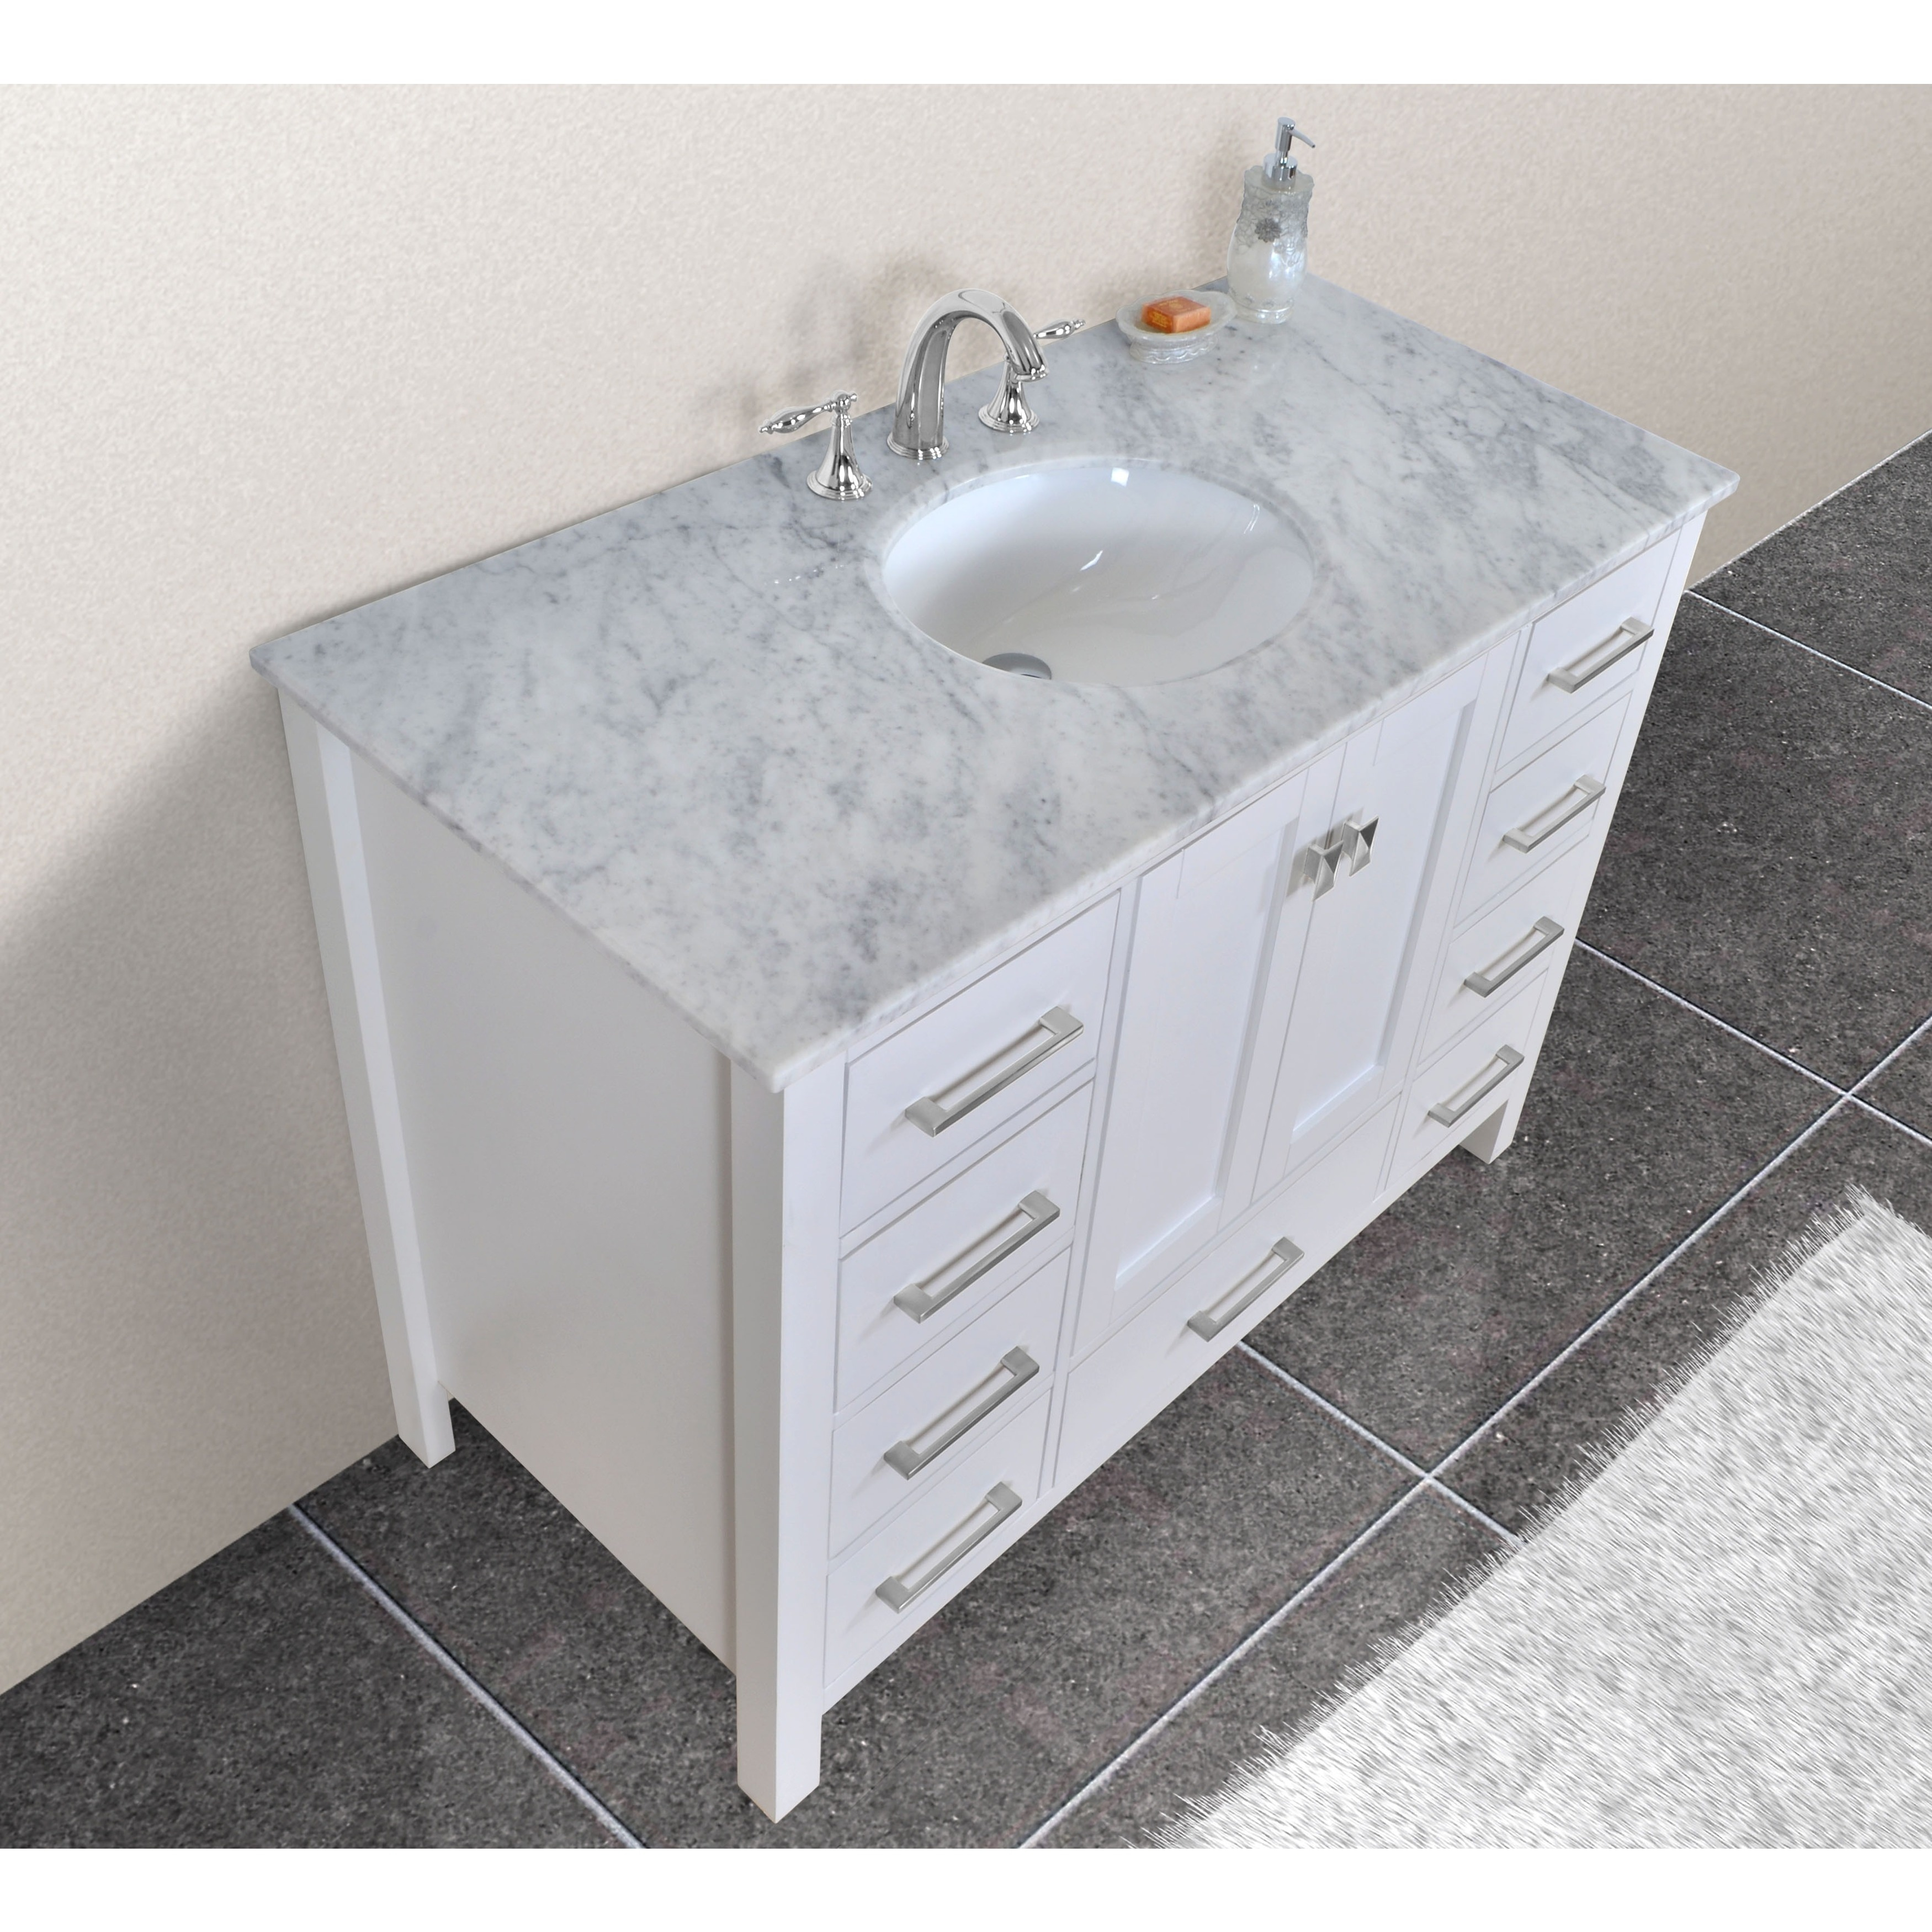 withrble with vanity single bathroom whitewhite size vanitysingle comely top white marble vessel modern of photos full vintage ideas sink